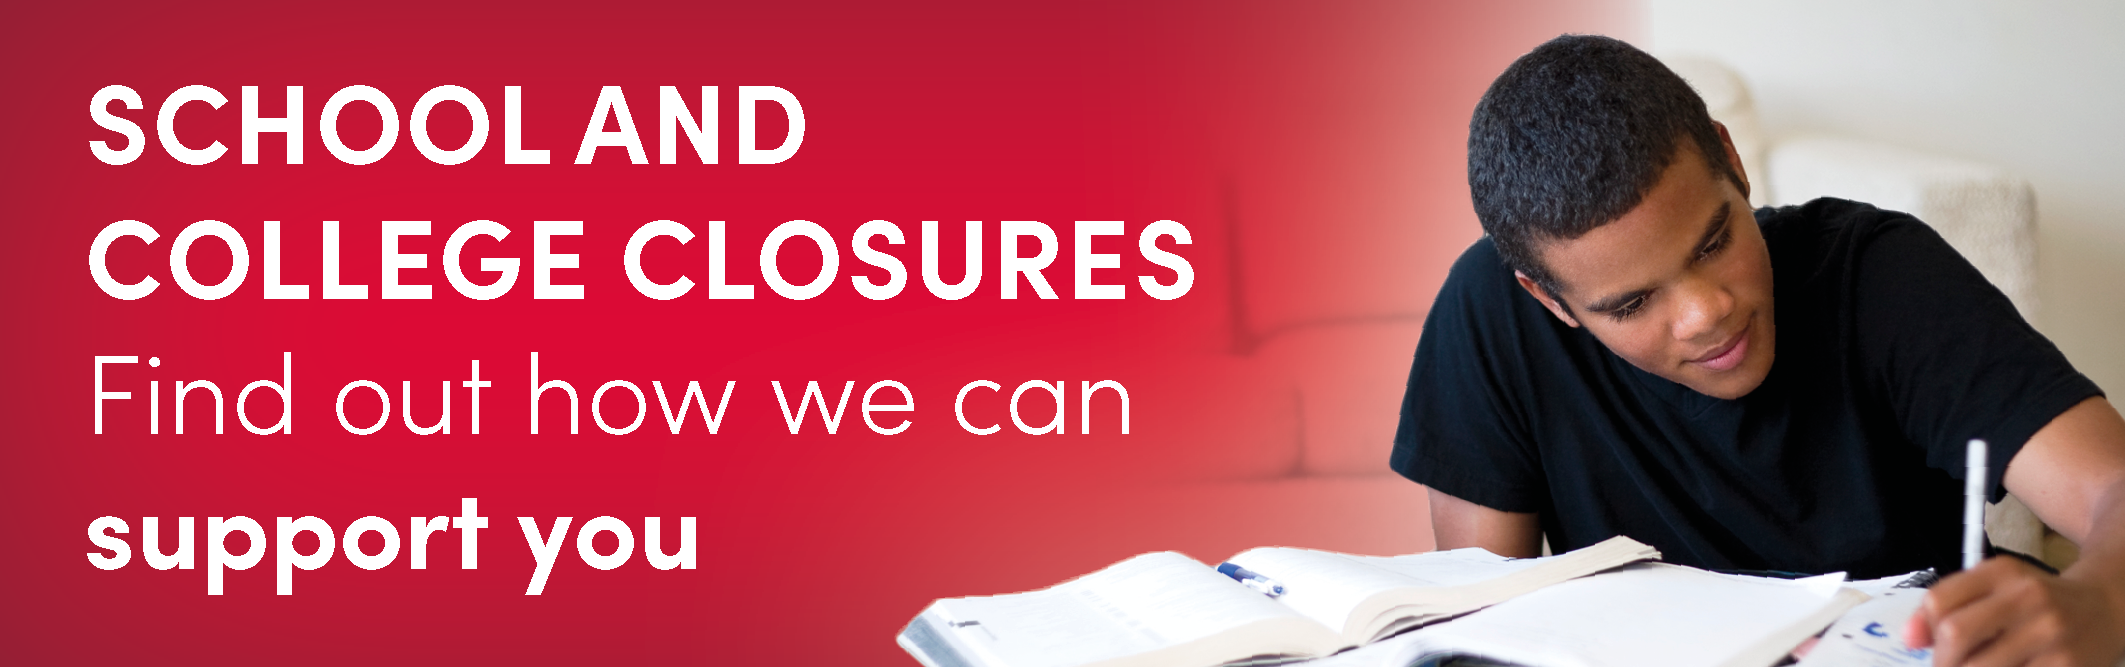 Support during school and college closures - find out how we an support you